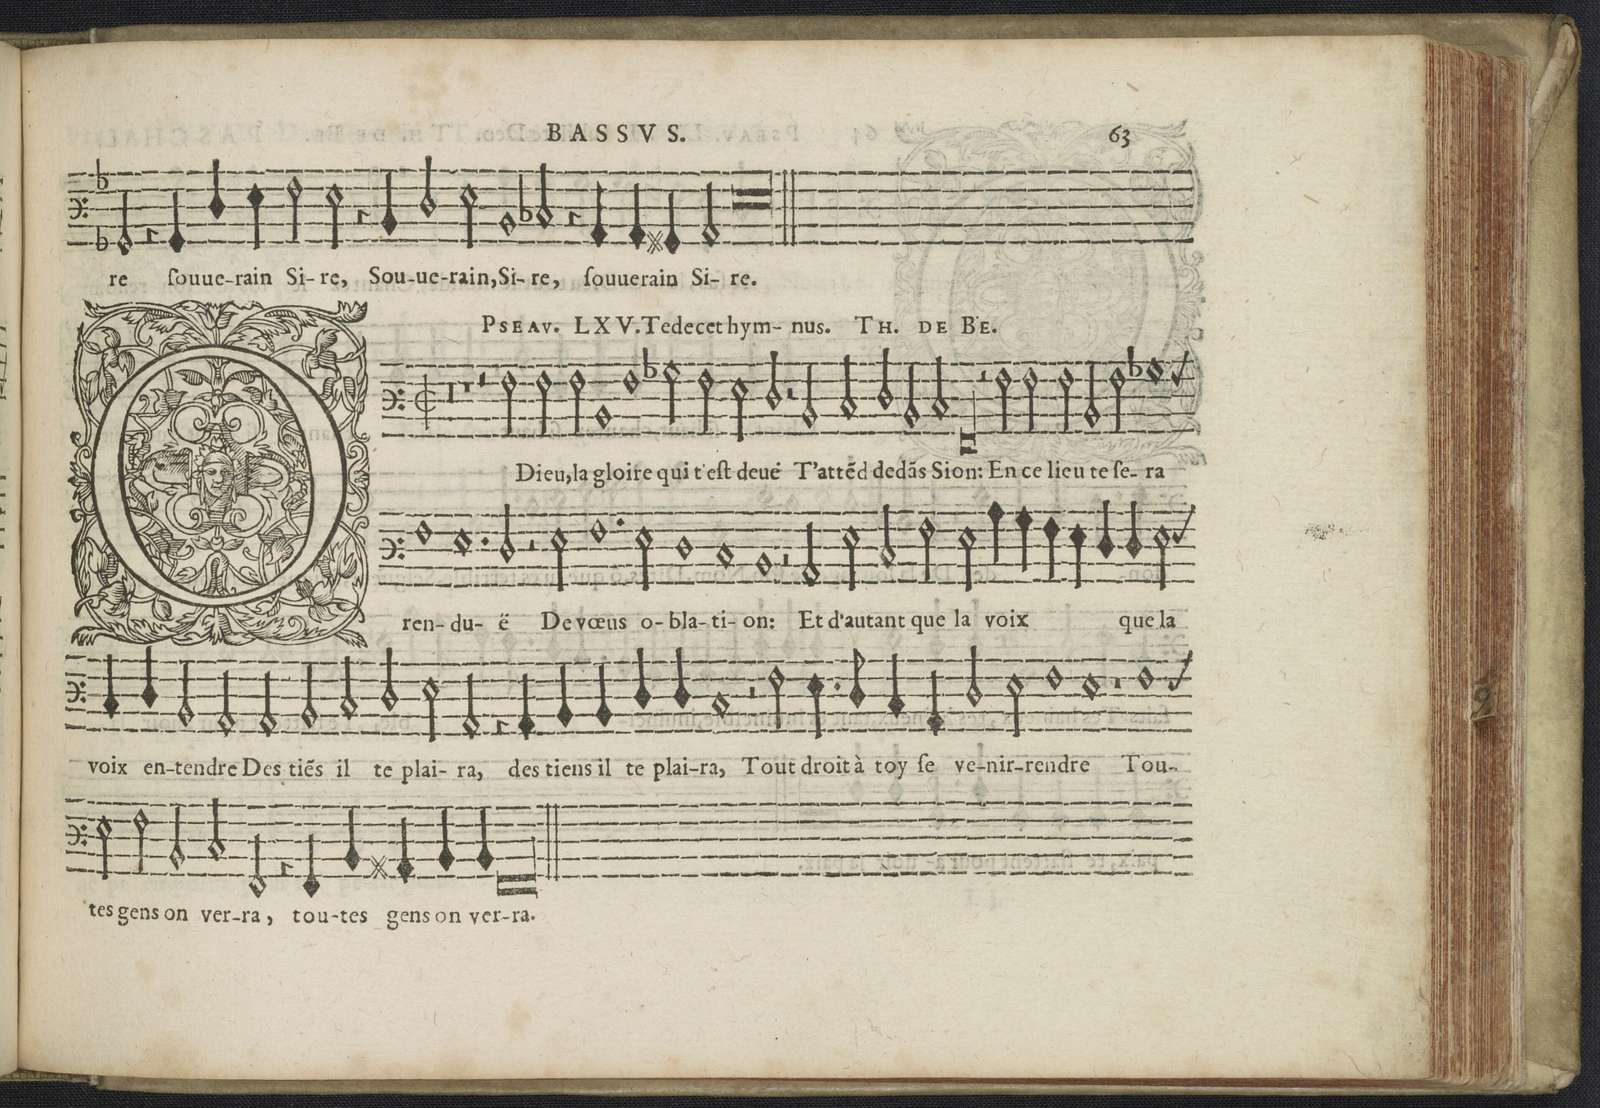 Bassus [Pseaumes de David and sacred part songs from Claude Le Jeune, Jan Peiterszoon Sweelinck, Paschal de L'Estocart, Orlando di Lasso, Jan Tollius in the 16th and the early17th century]